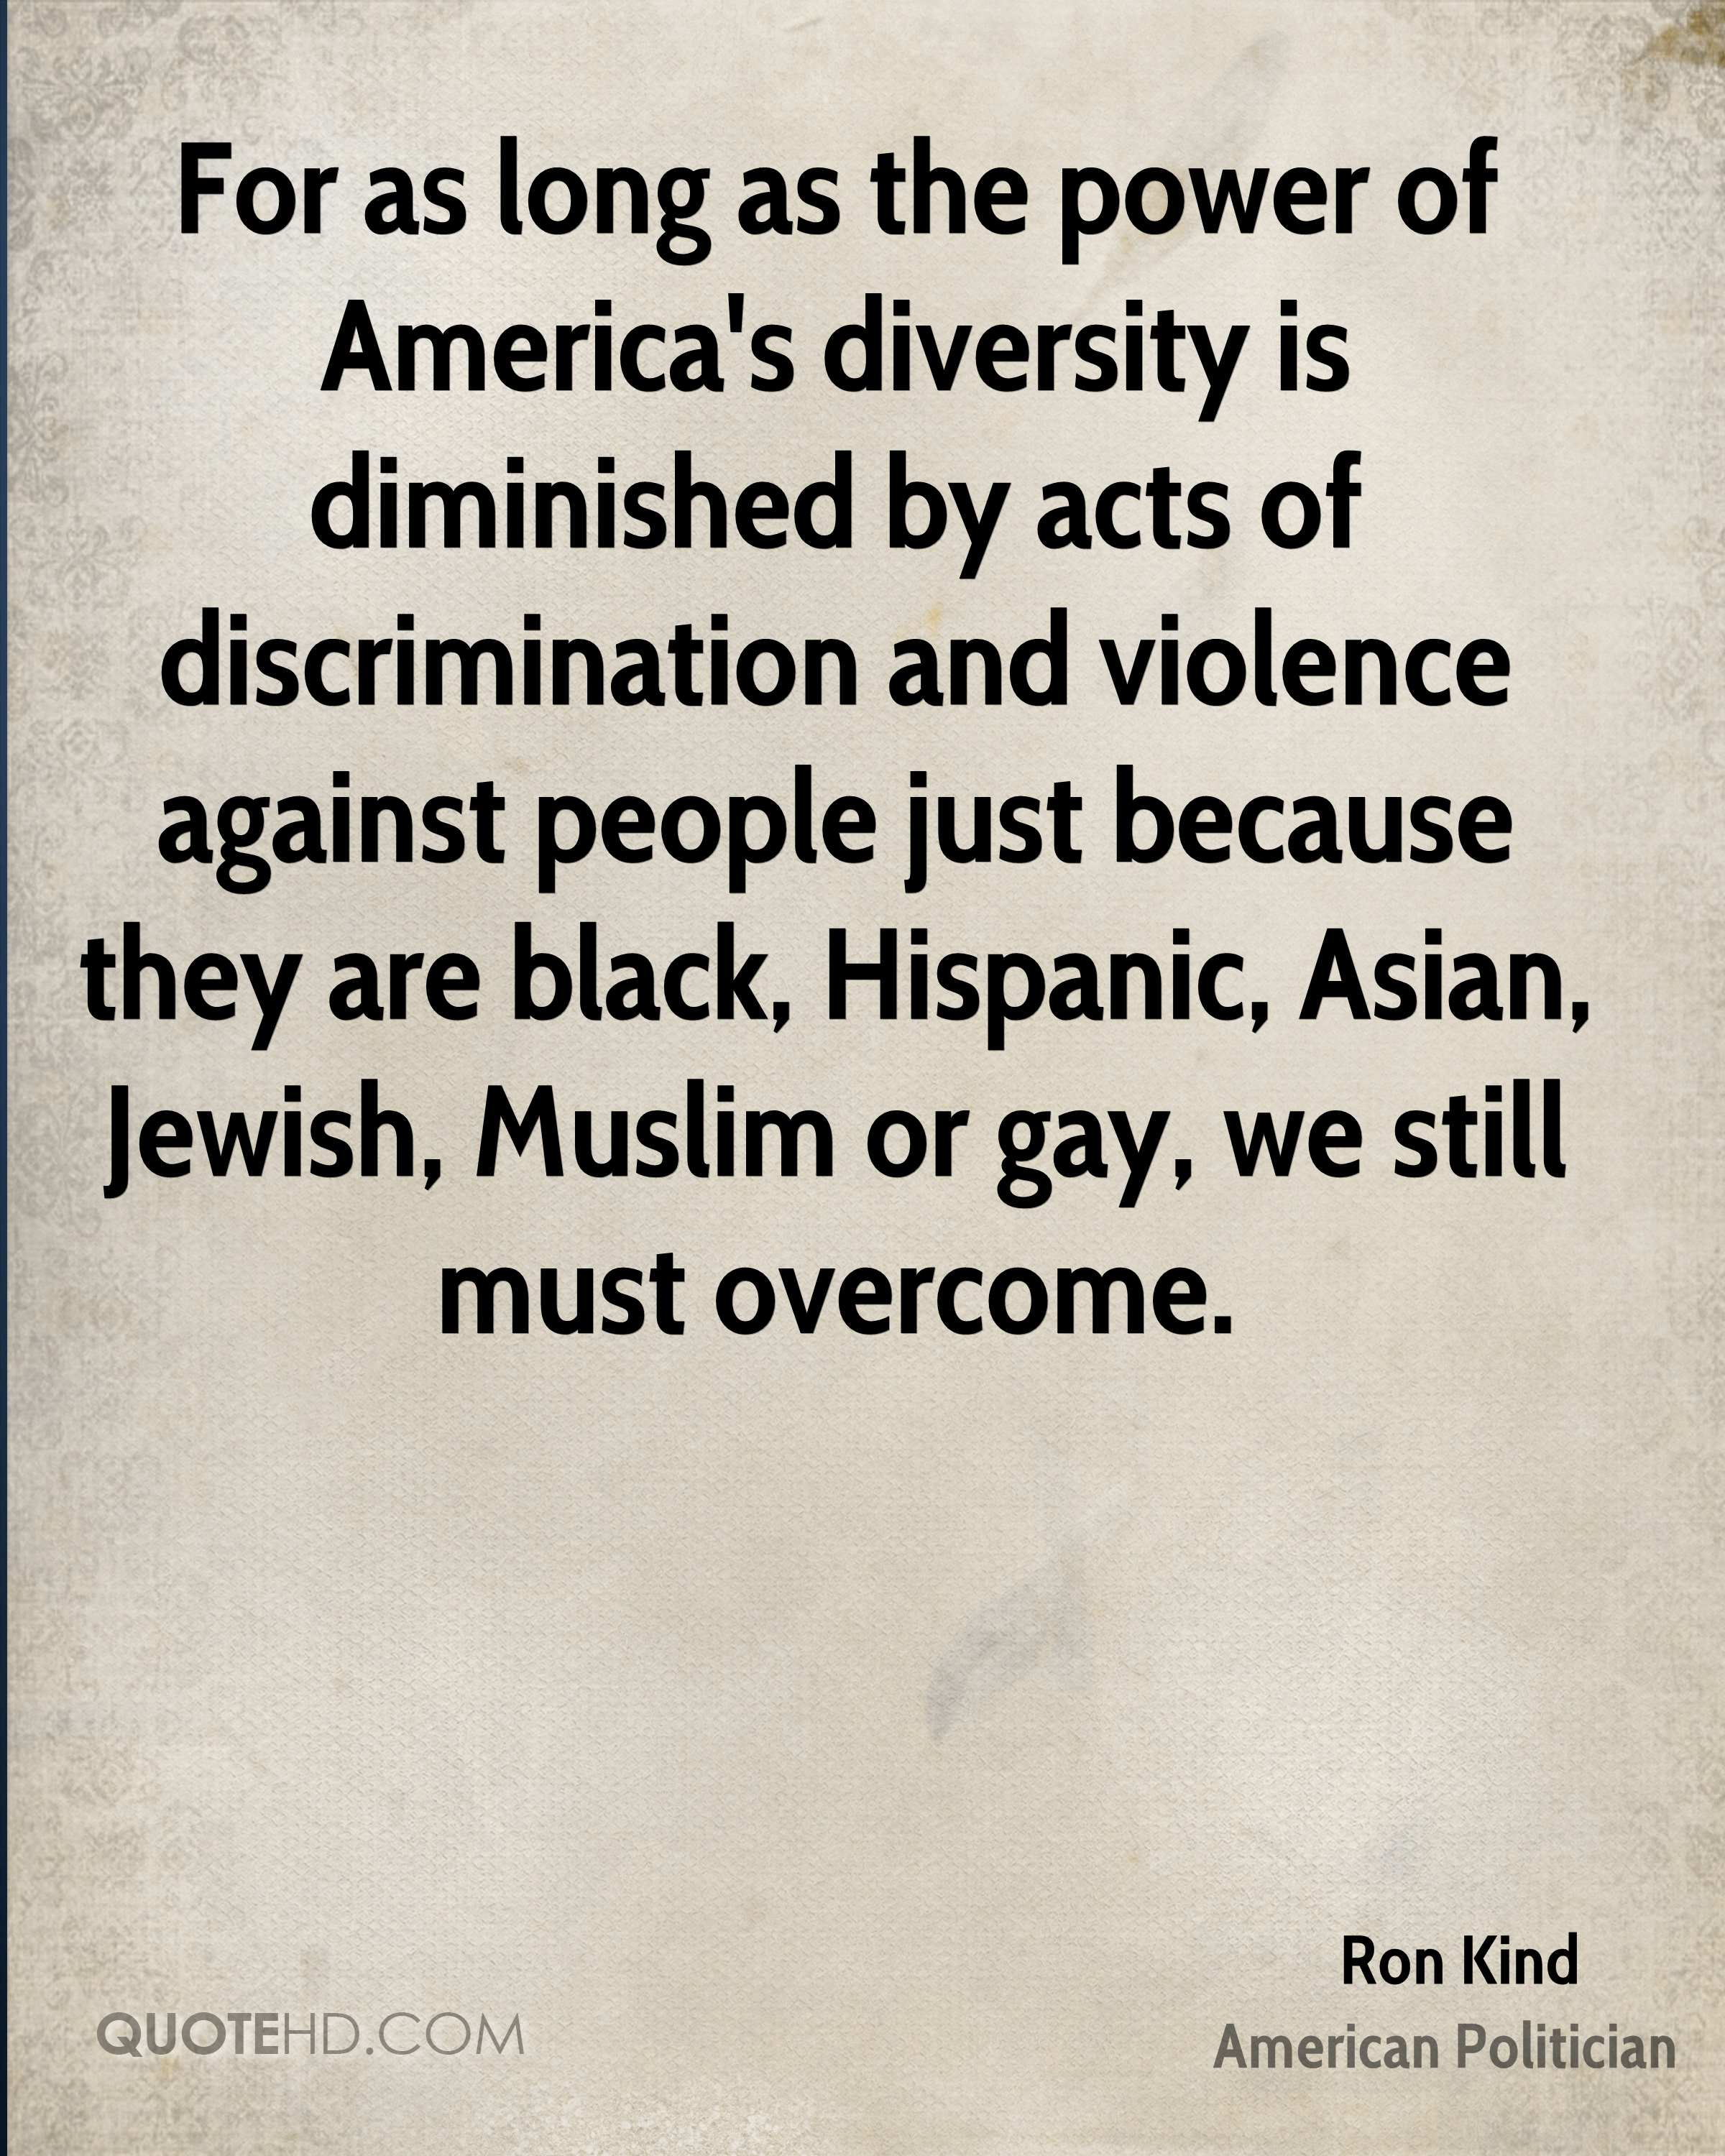 For as long as the power of America's diversity is diminished by acts of discrimination and violence against people just because they are black, Hispanic, Asian, Jewish, Muslim or gay, we still must overcome.